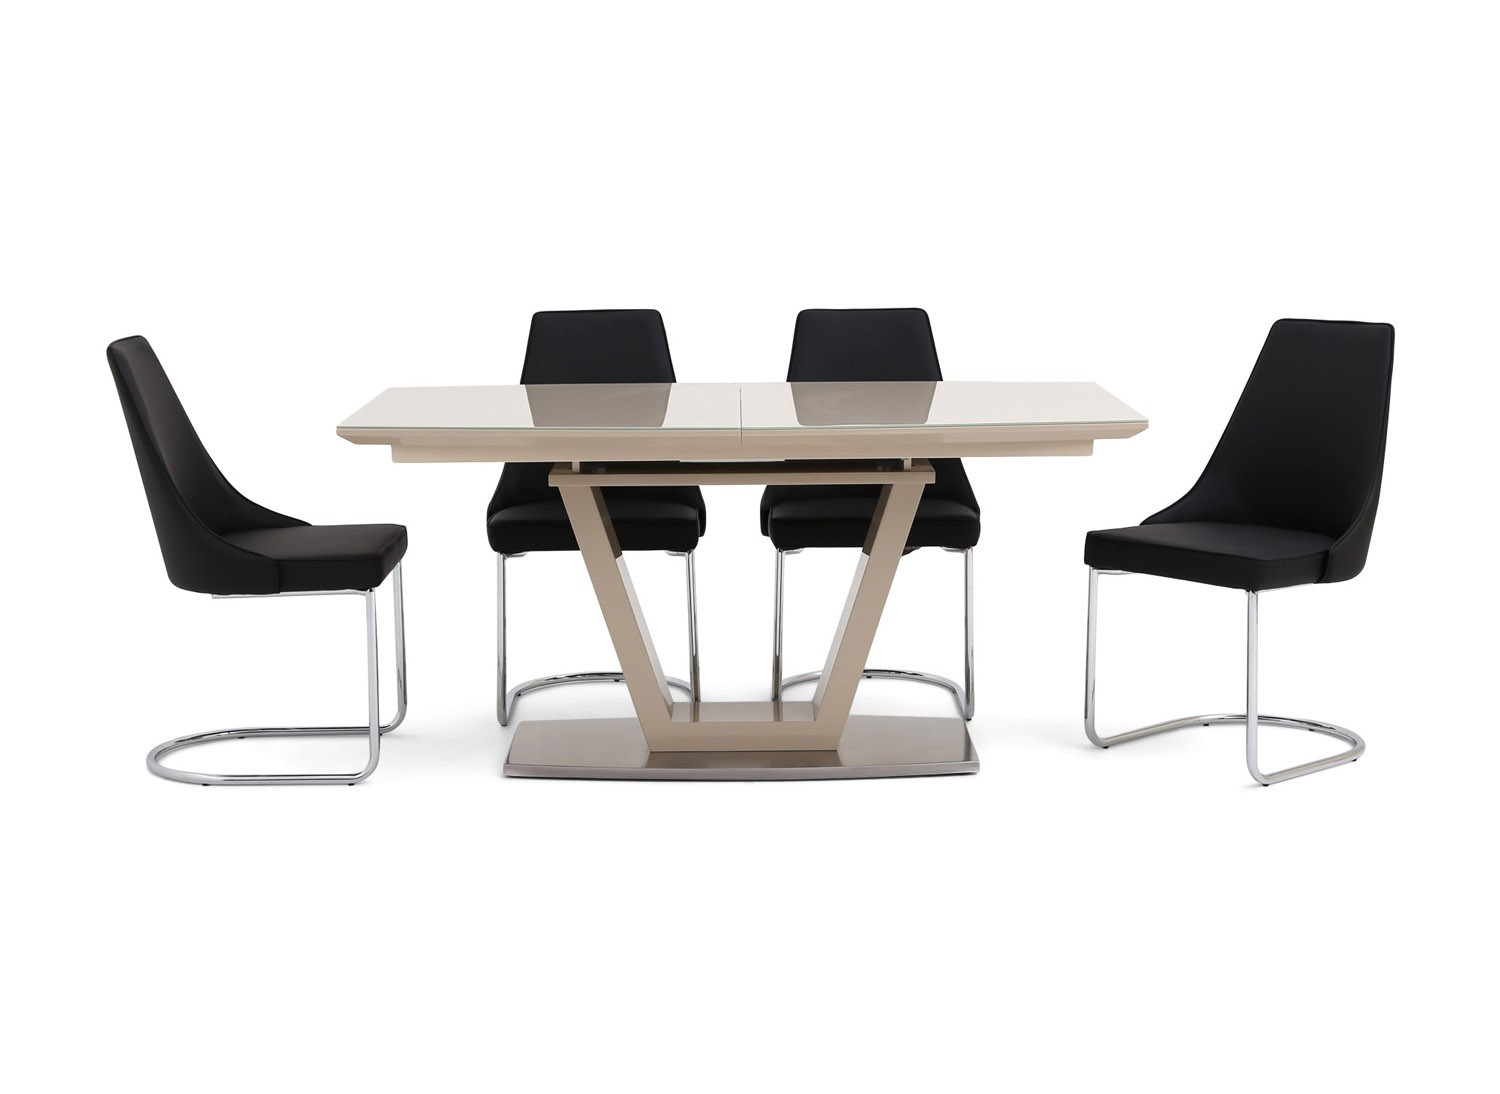 https://www.firstfurniture.co.uk/pub/media/catalog/product/f/a/fairmont_valente_ext_cream_high_gloss_dining_table_6_mya_grey_chairs_3.jpg